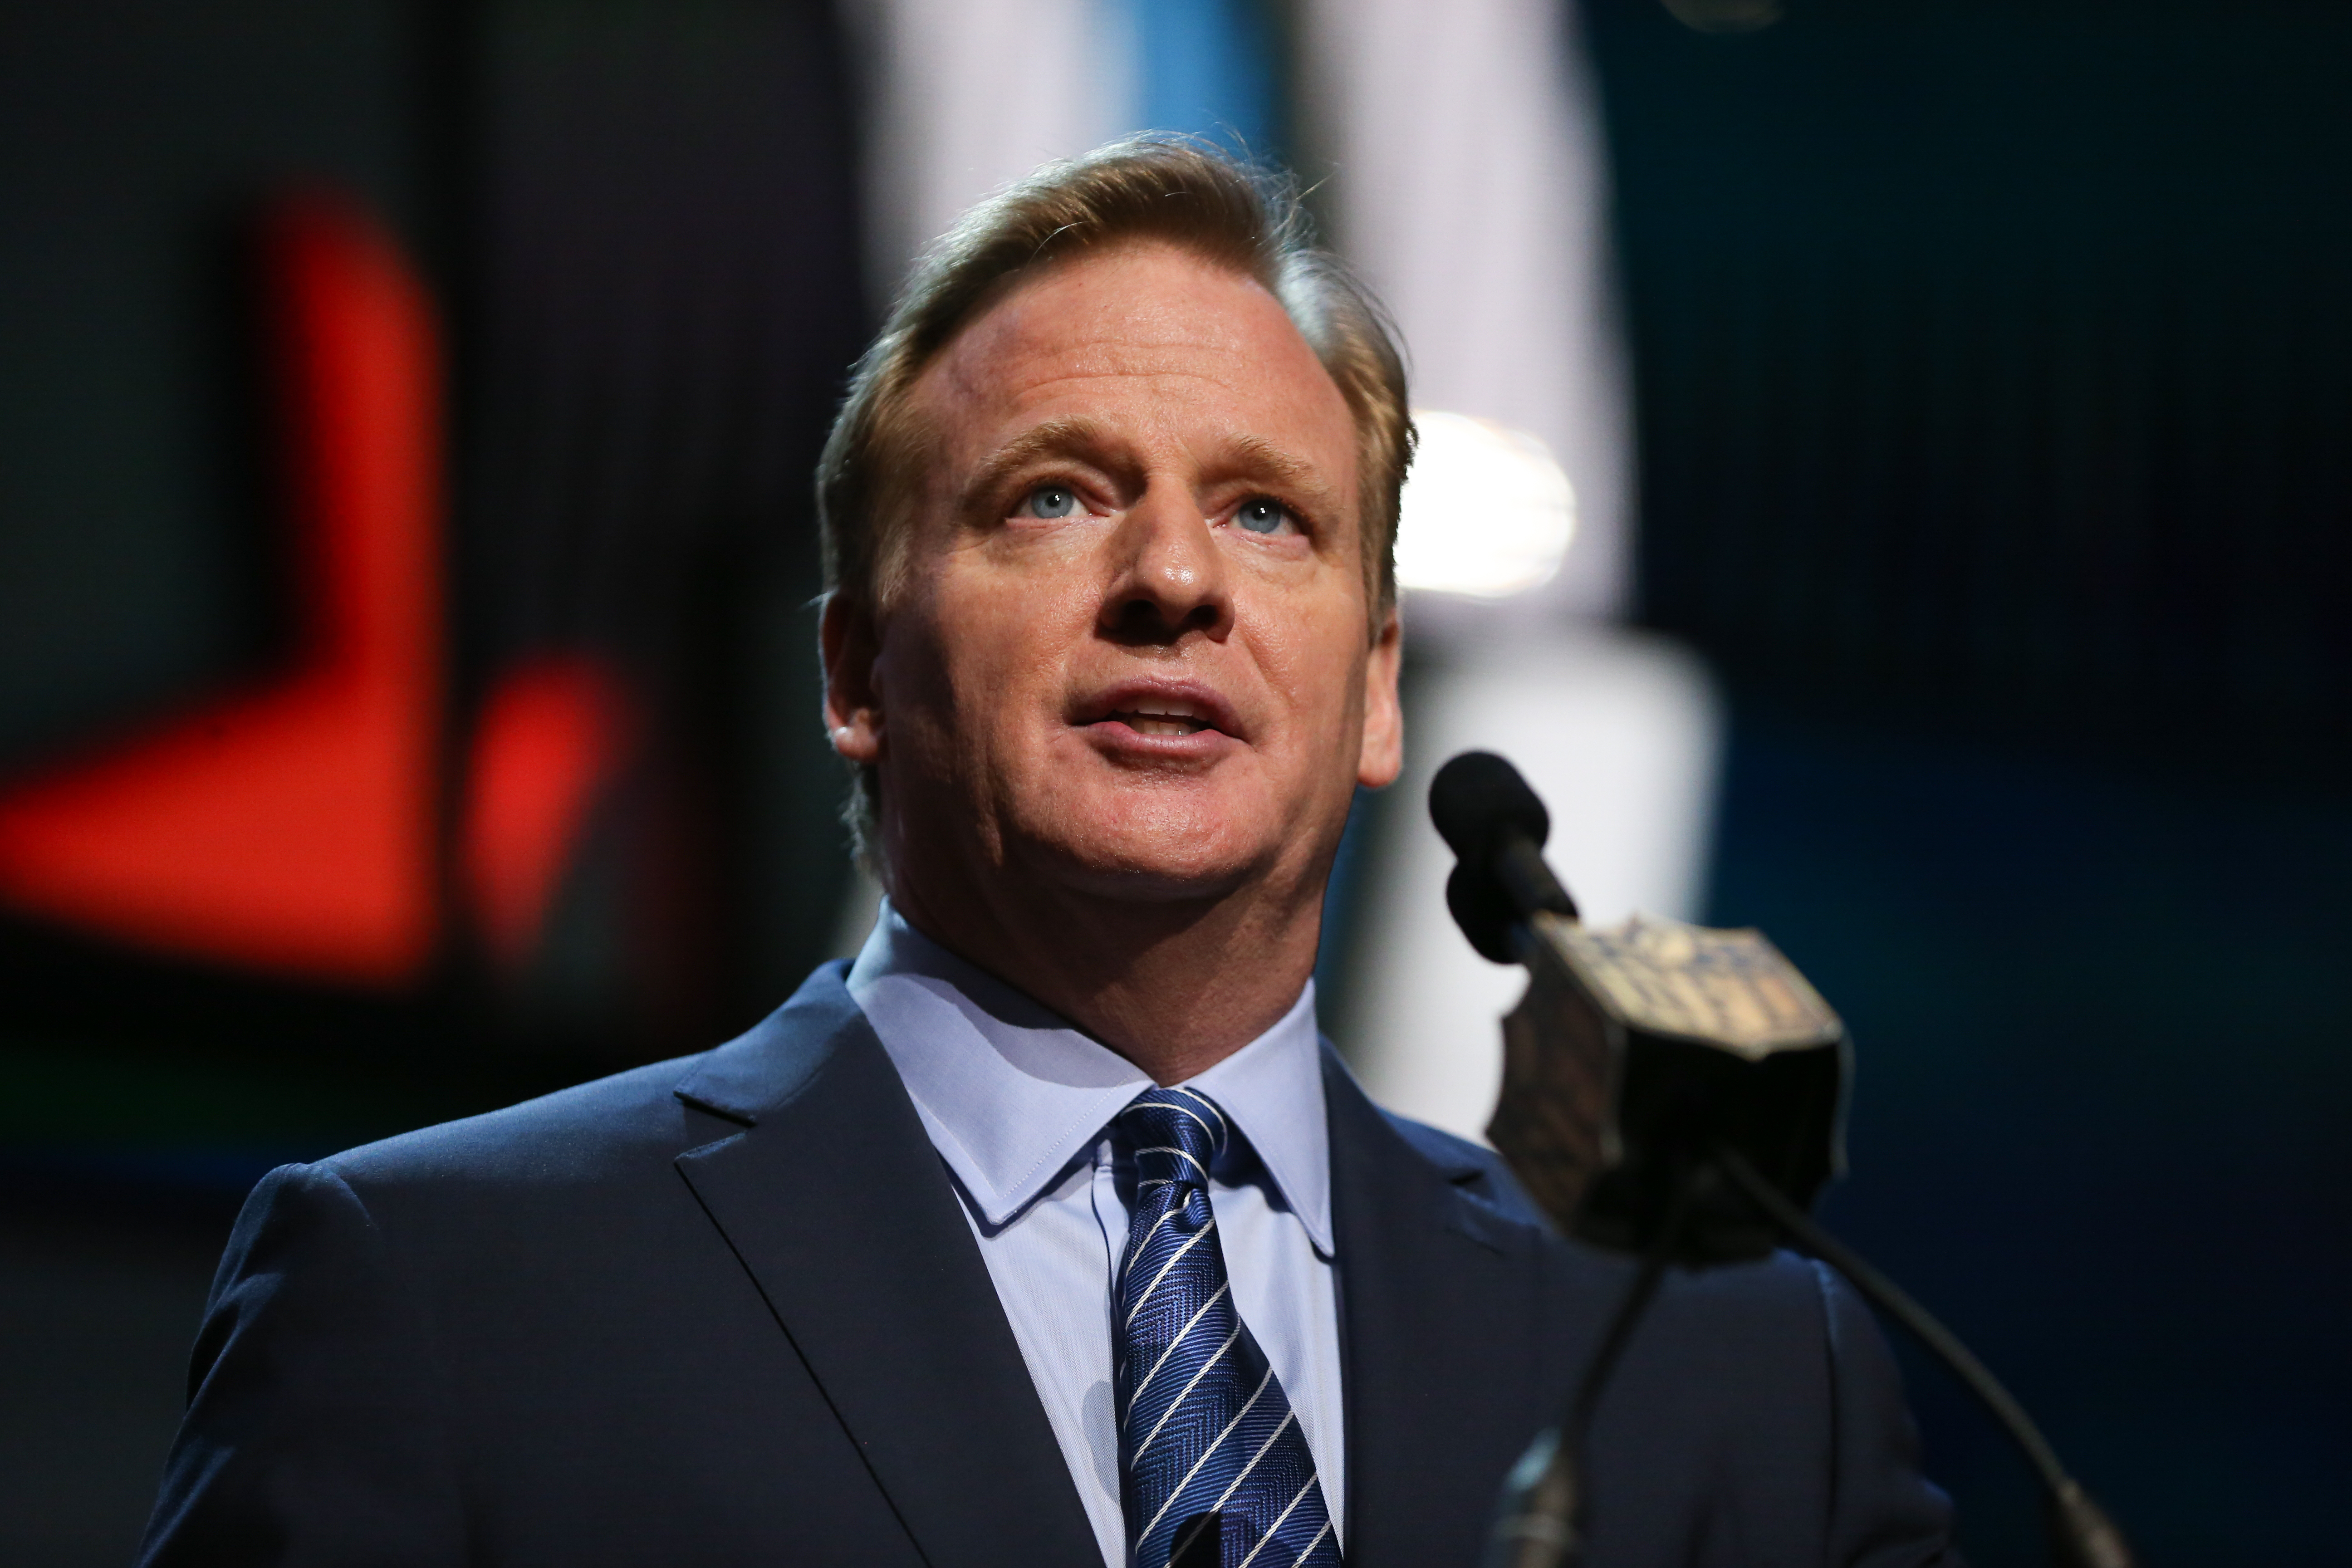 The NFL's hypocritical stance on fantasy football and gambling